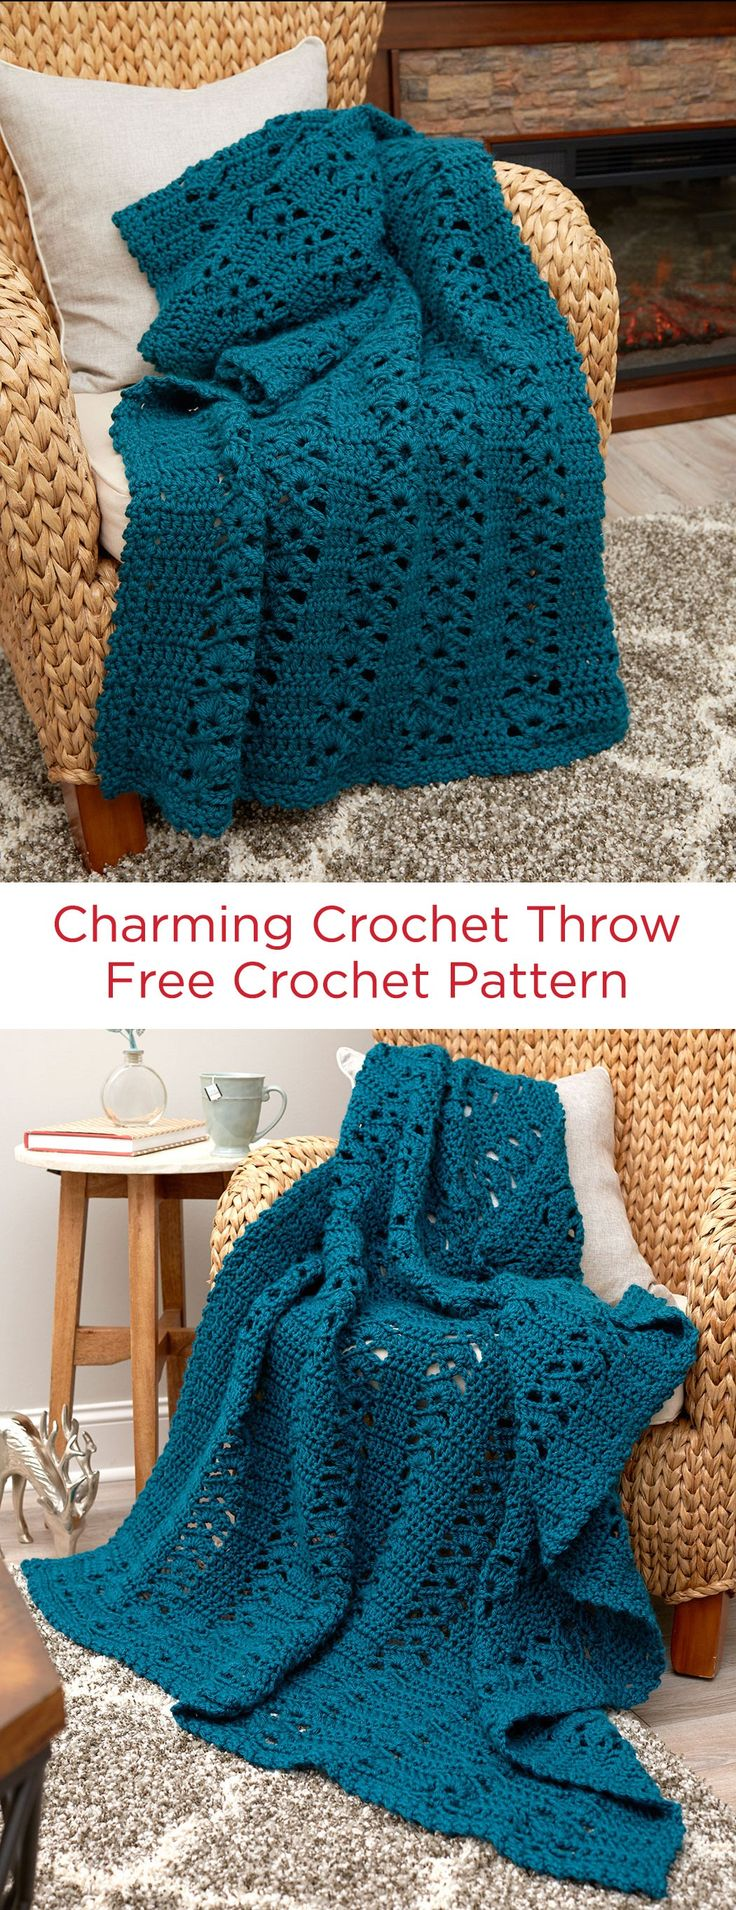 Charming Crochet Throw Free Crochet Pattern in Red Heart Soft Essentials Yarn -- This combination of shell and v-stitches work well for a nice chunky yarn throw. Crochet it all in one color for any relaxing spot in your home.